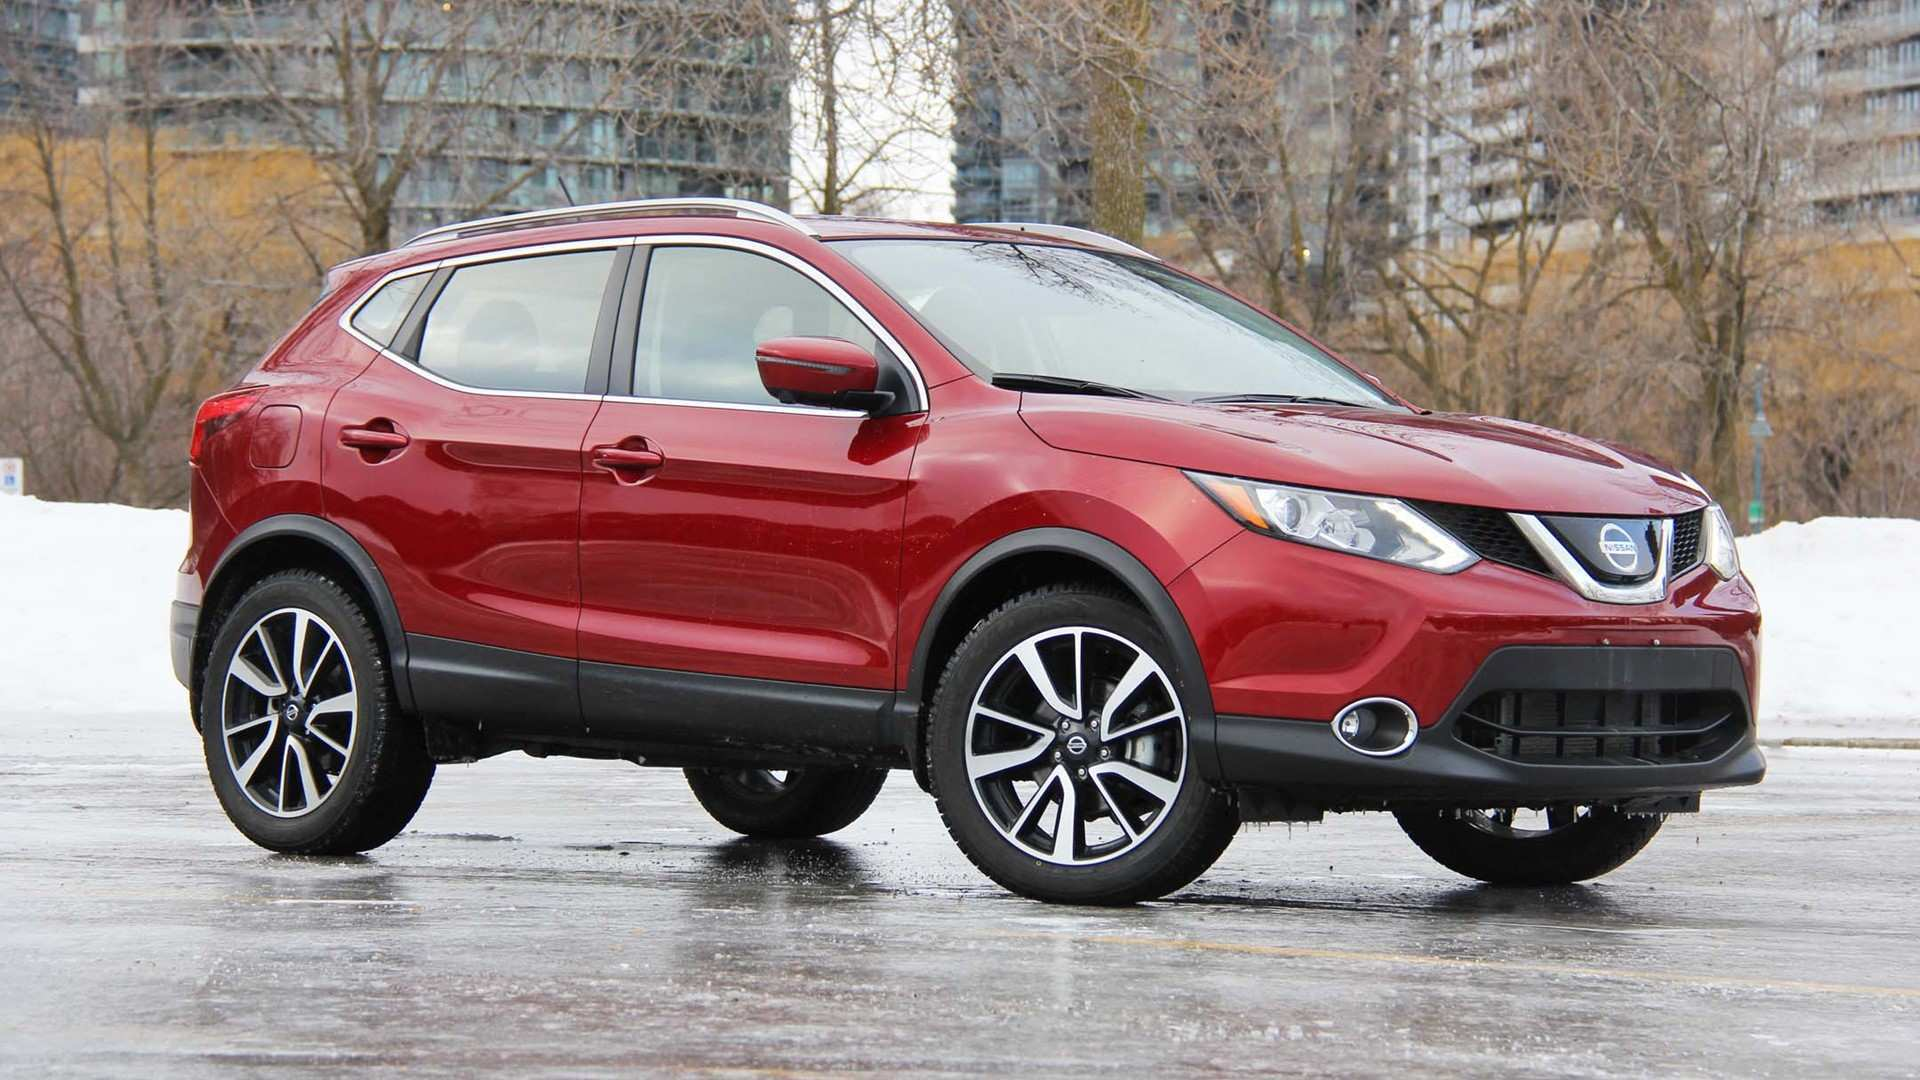 73 All New 2019 Nissan Qashqai Price And Release Date